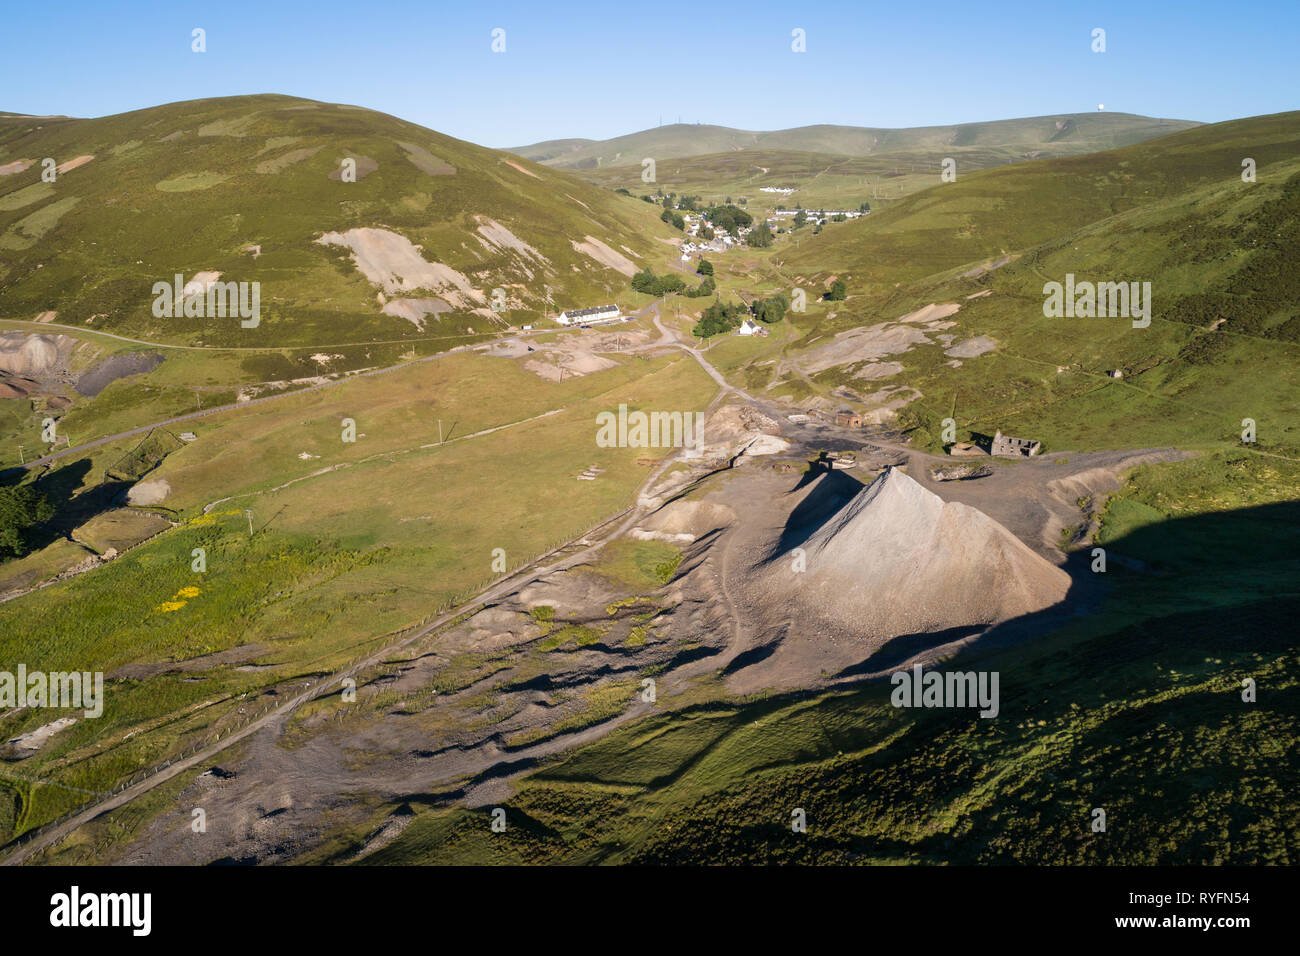 Arial Image of Wanlockhead, Scotland's highest village showing old mine workings and industrial waste. - Stock Image